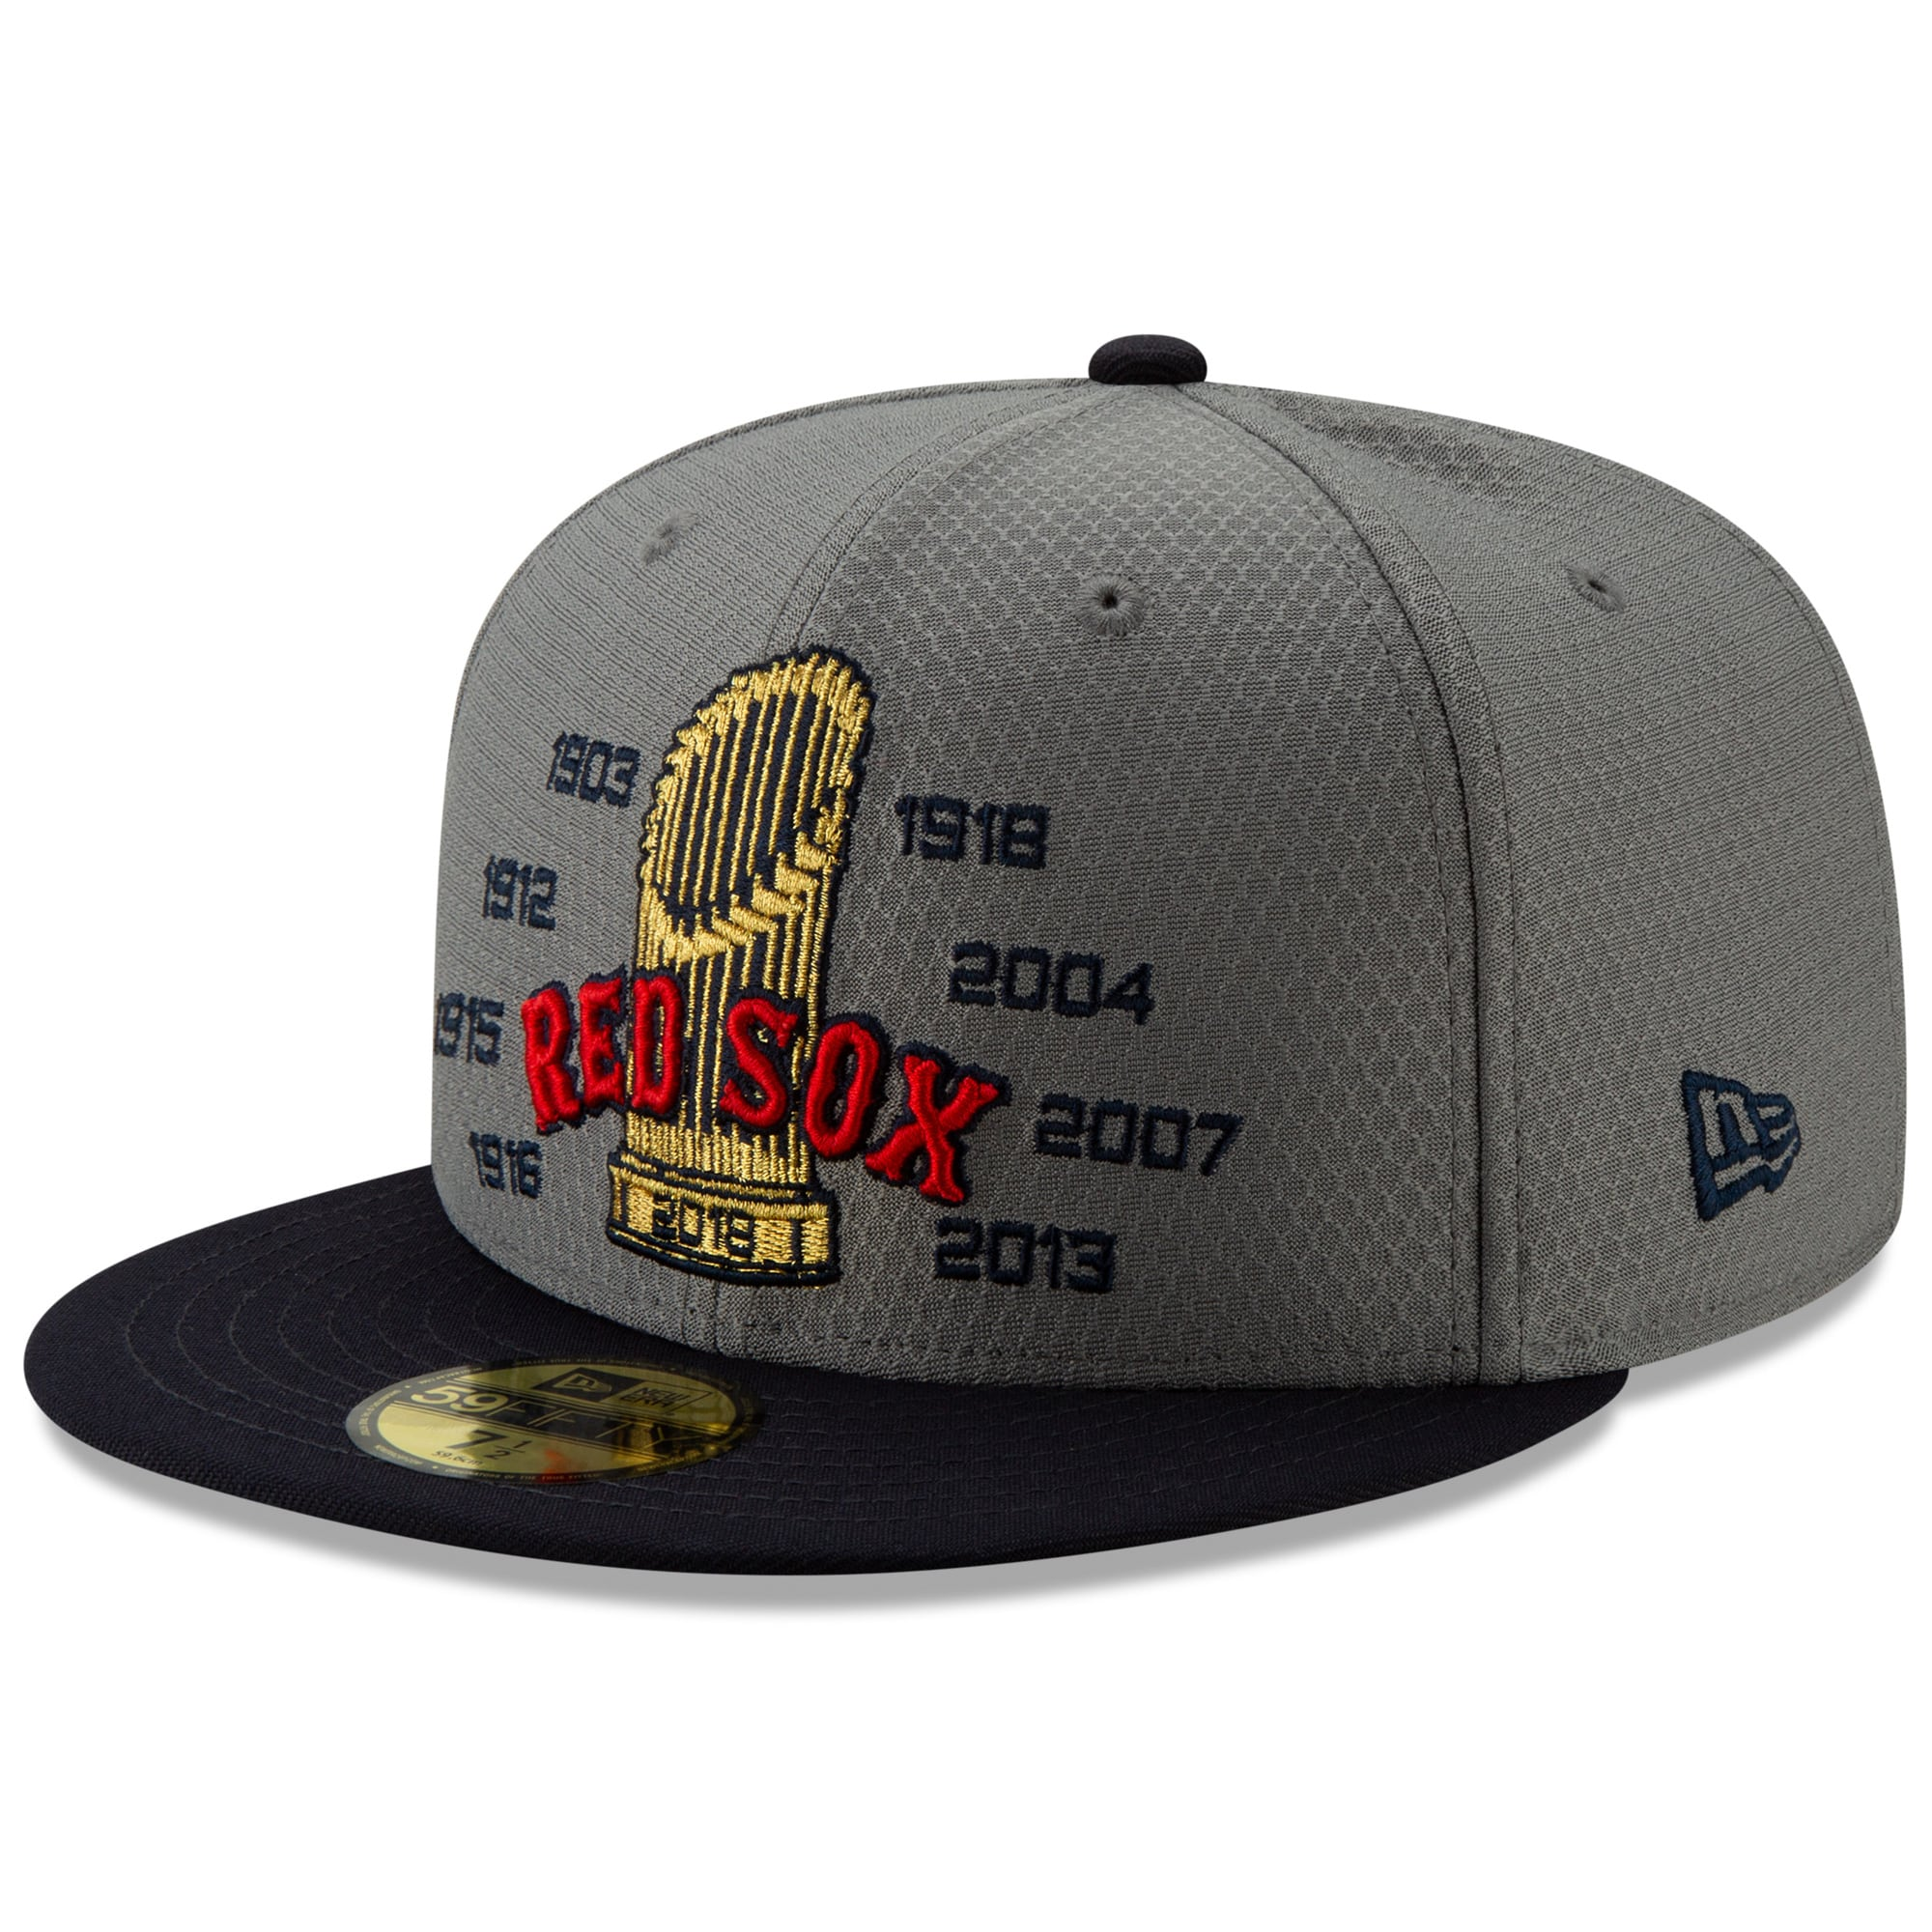 Boston Red Sox New Era Men's World Series Champs 59FIFTY Fitted Hat - Gray/Navy